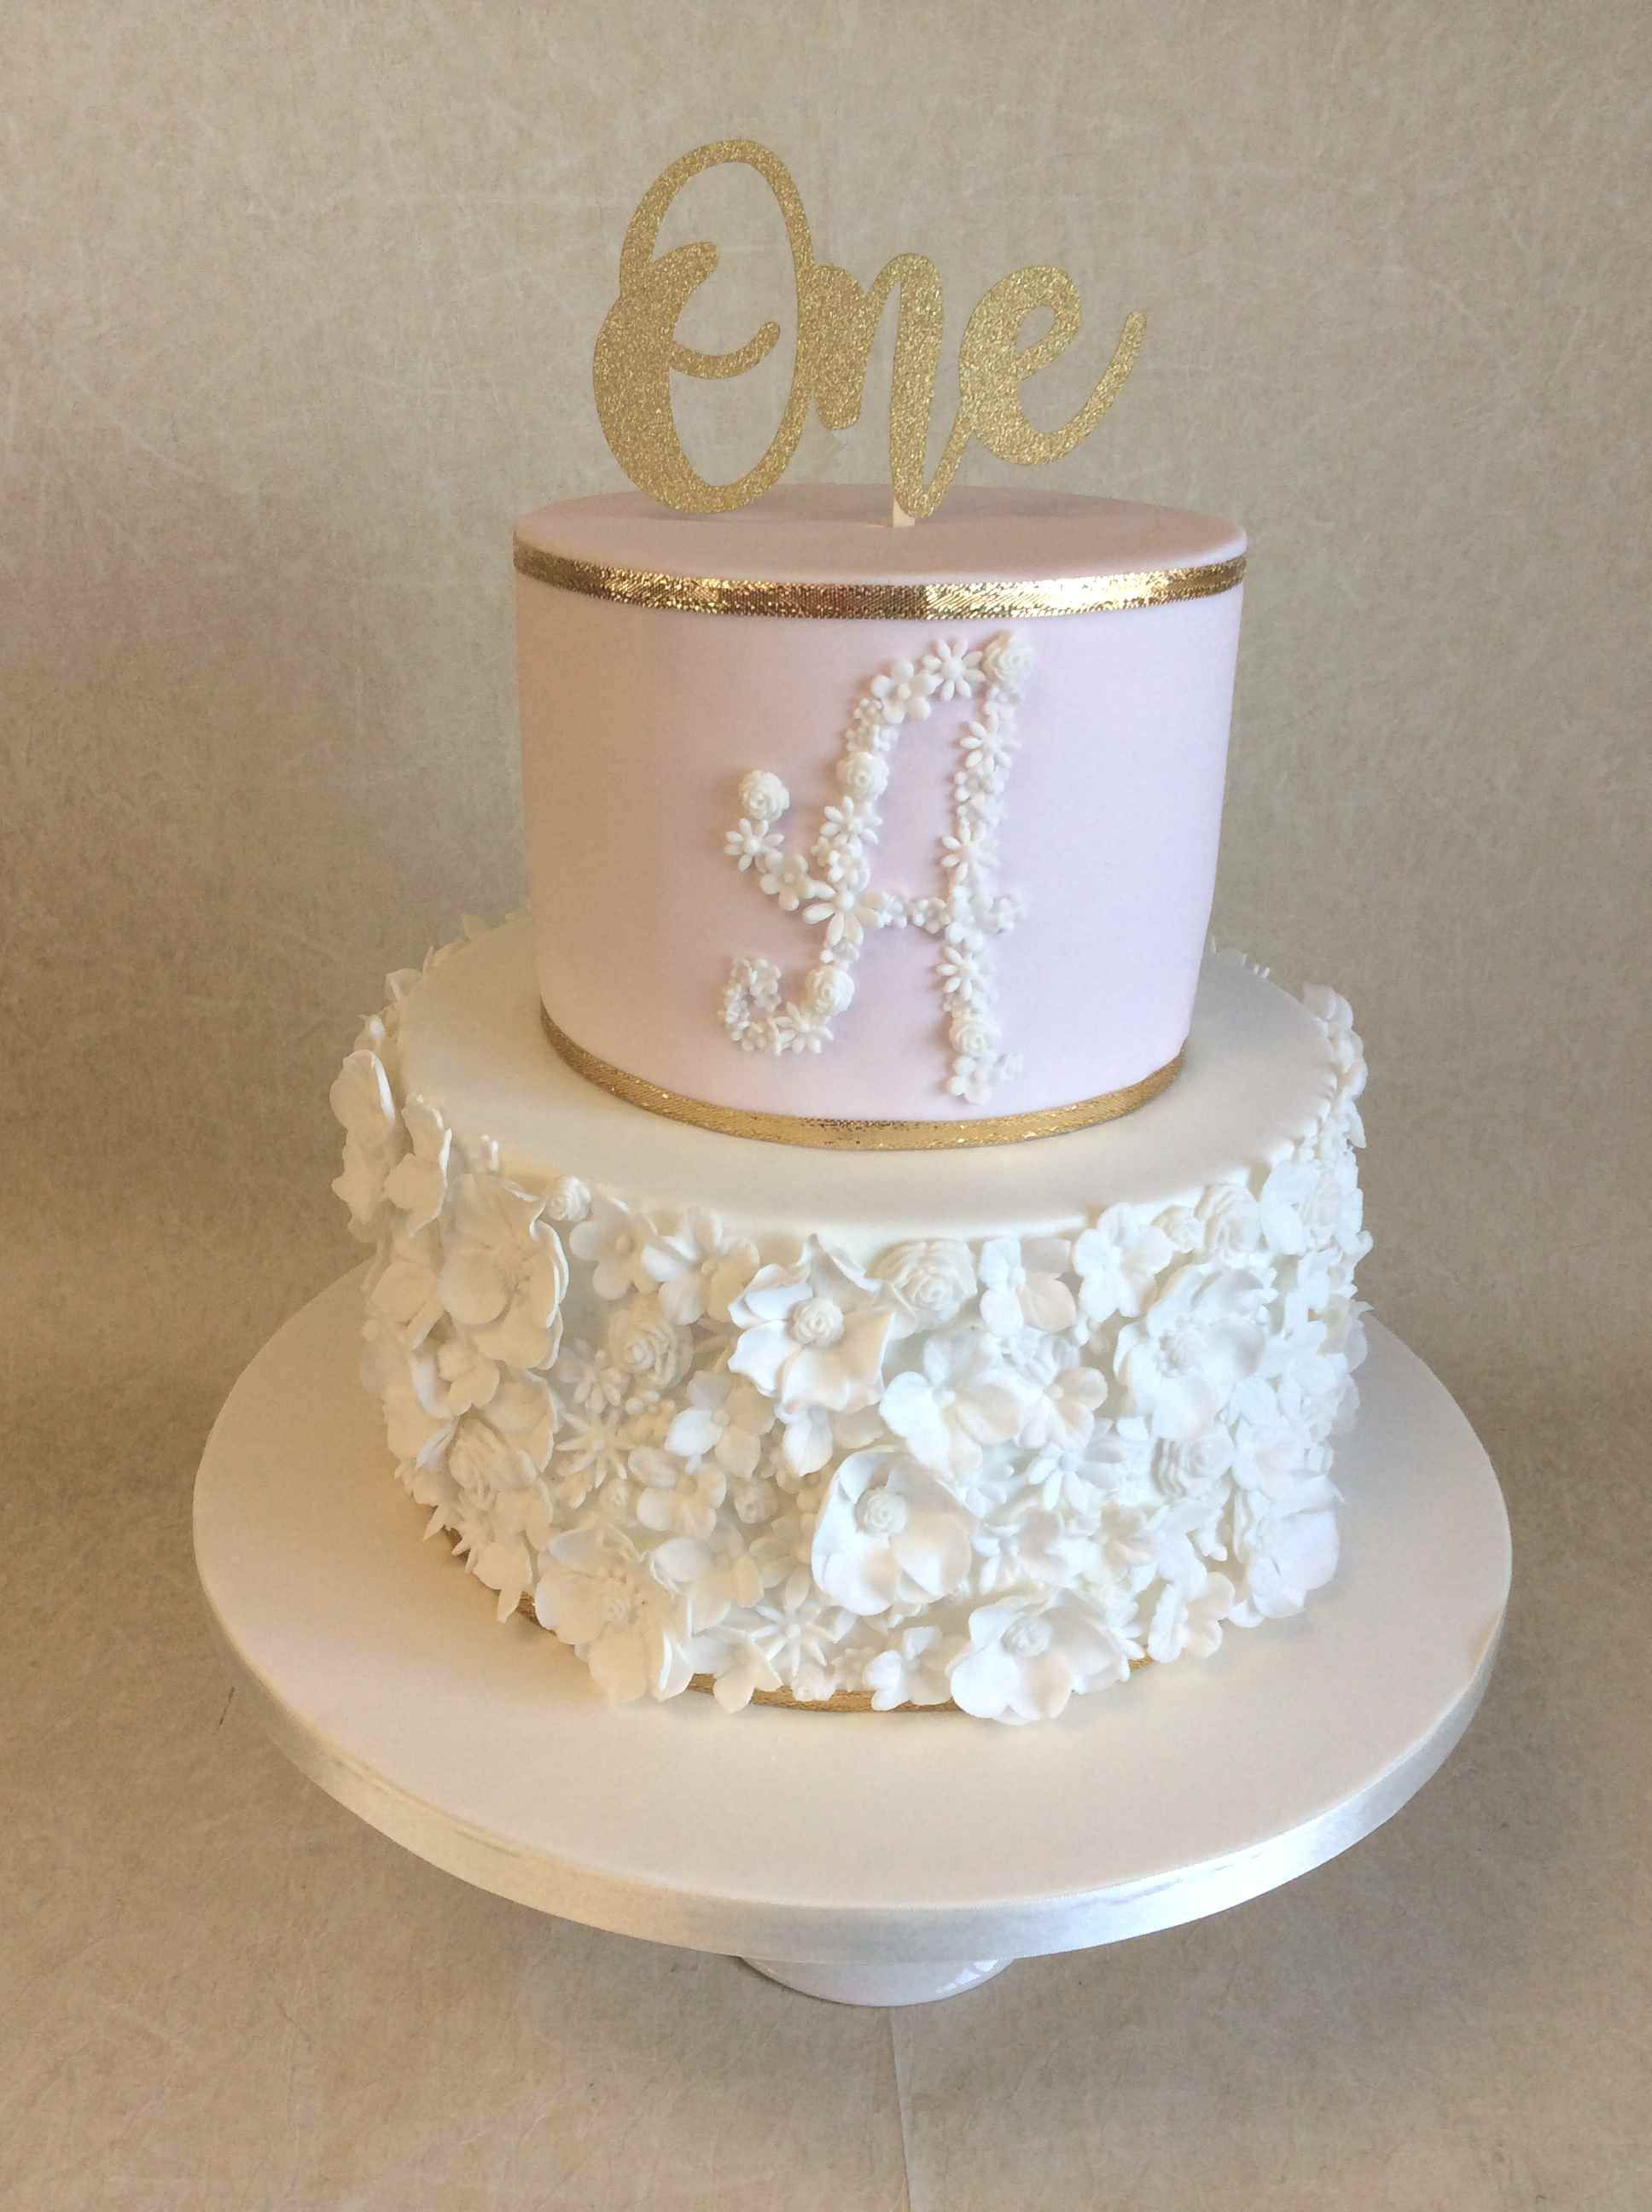 2 Tier Pale Pink And Gold Floral Design 1st Birthday Cake Baby First Birthday Cake Floral Cake First Birthday Cakes